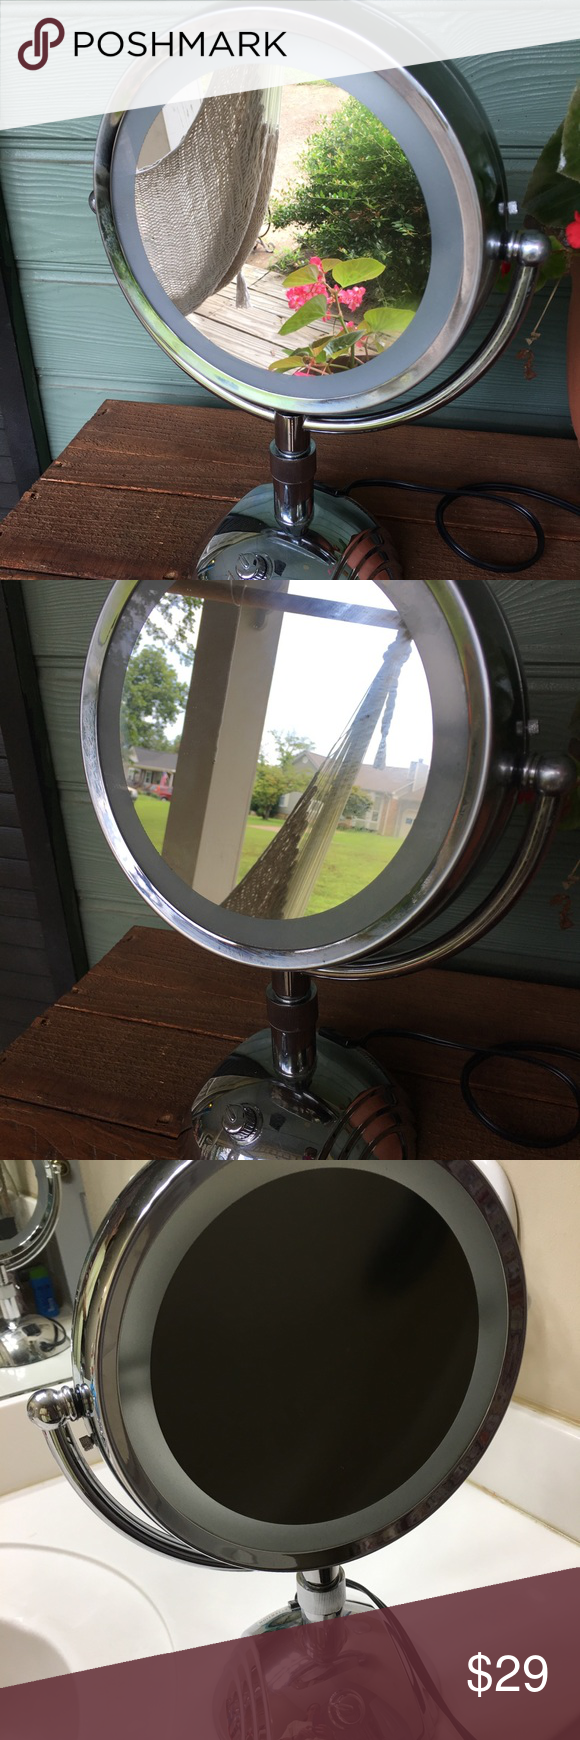 JilBere Lighted Makeup Mirror Great condition-Just no ...